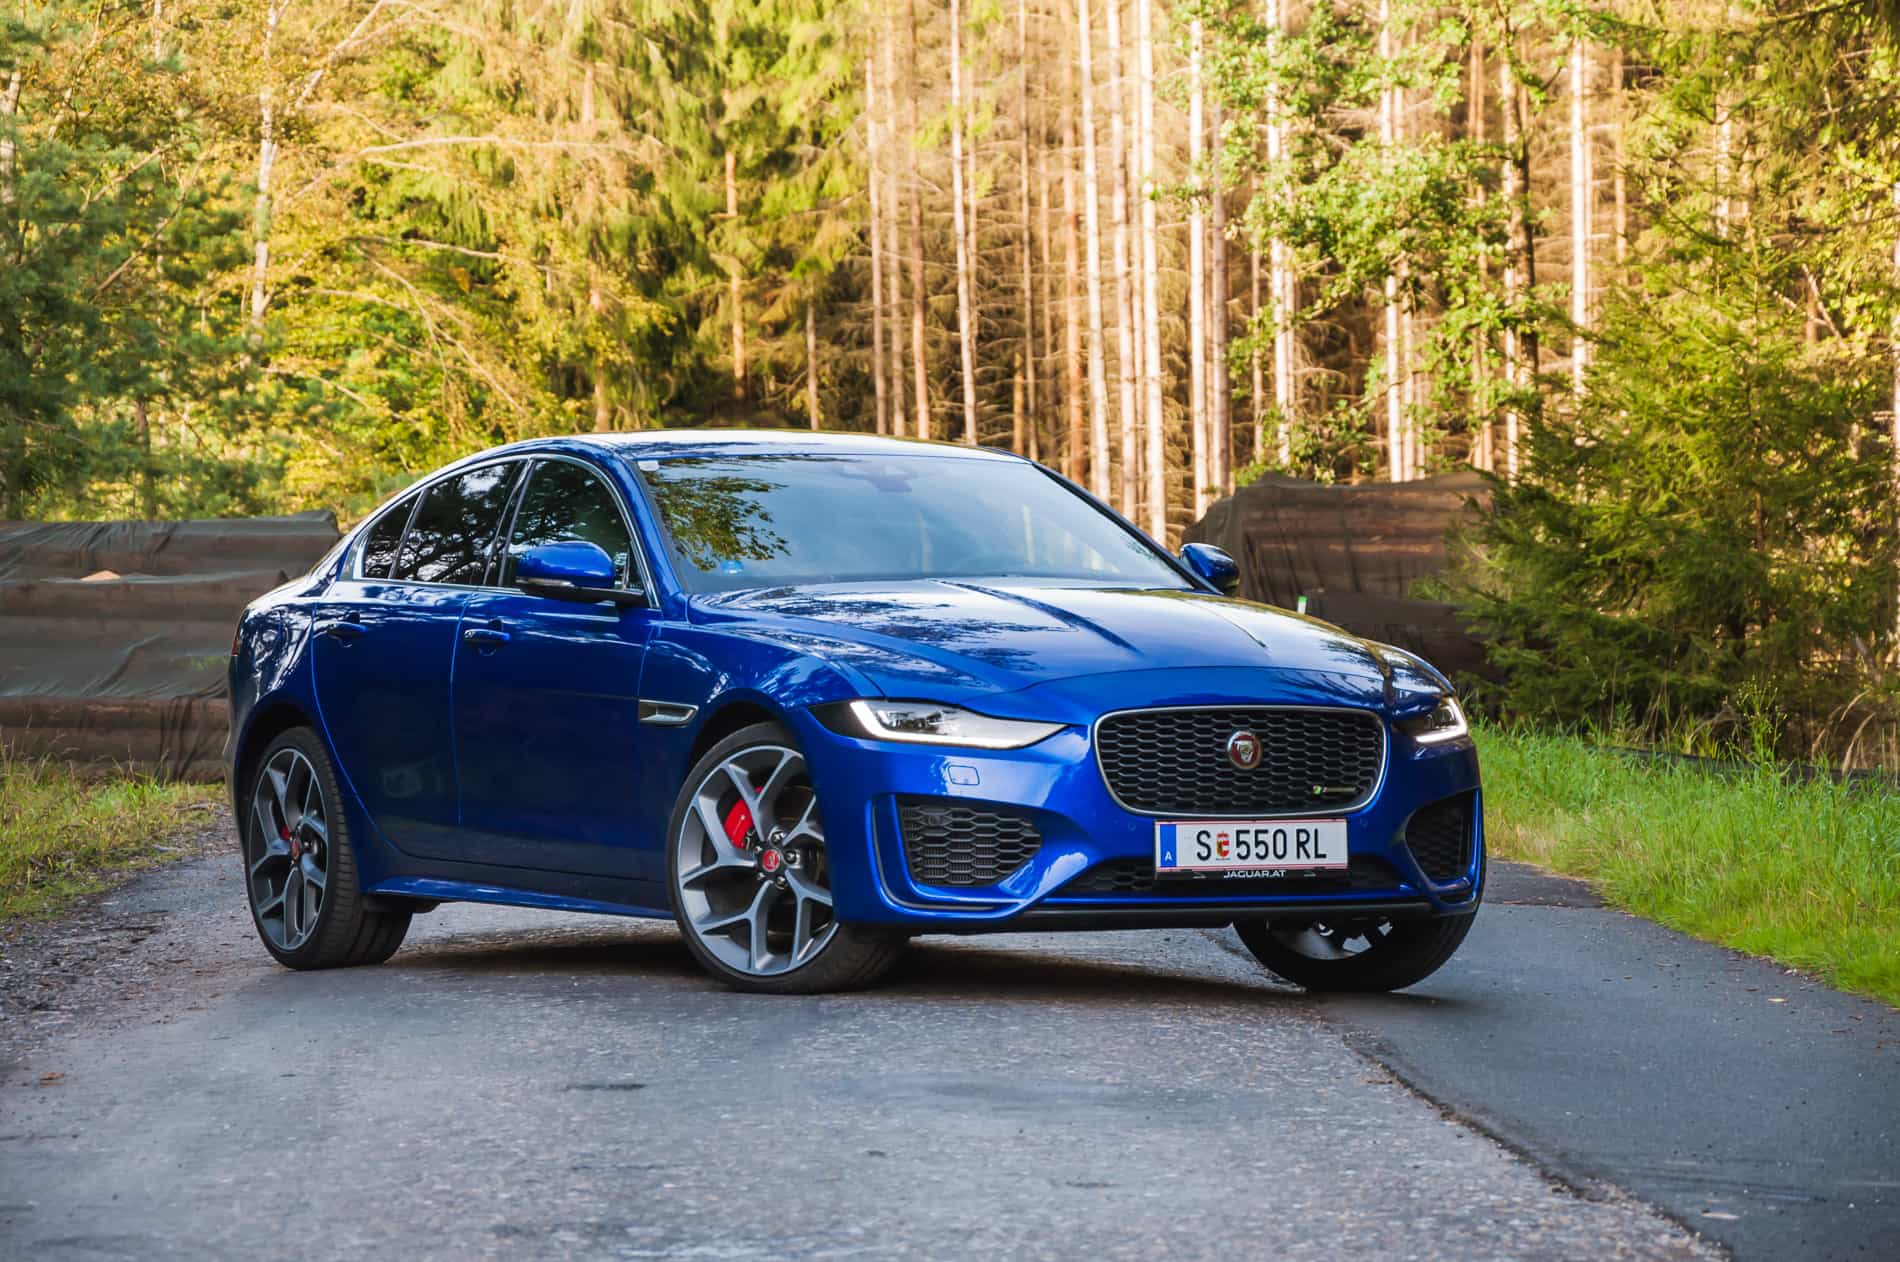 Jaguar XE P300 AWD (1 of 24)